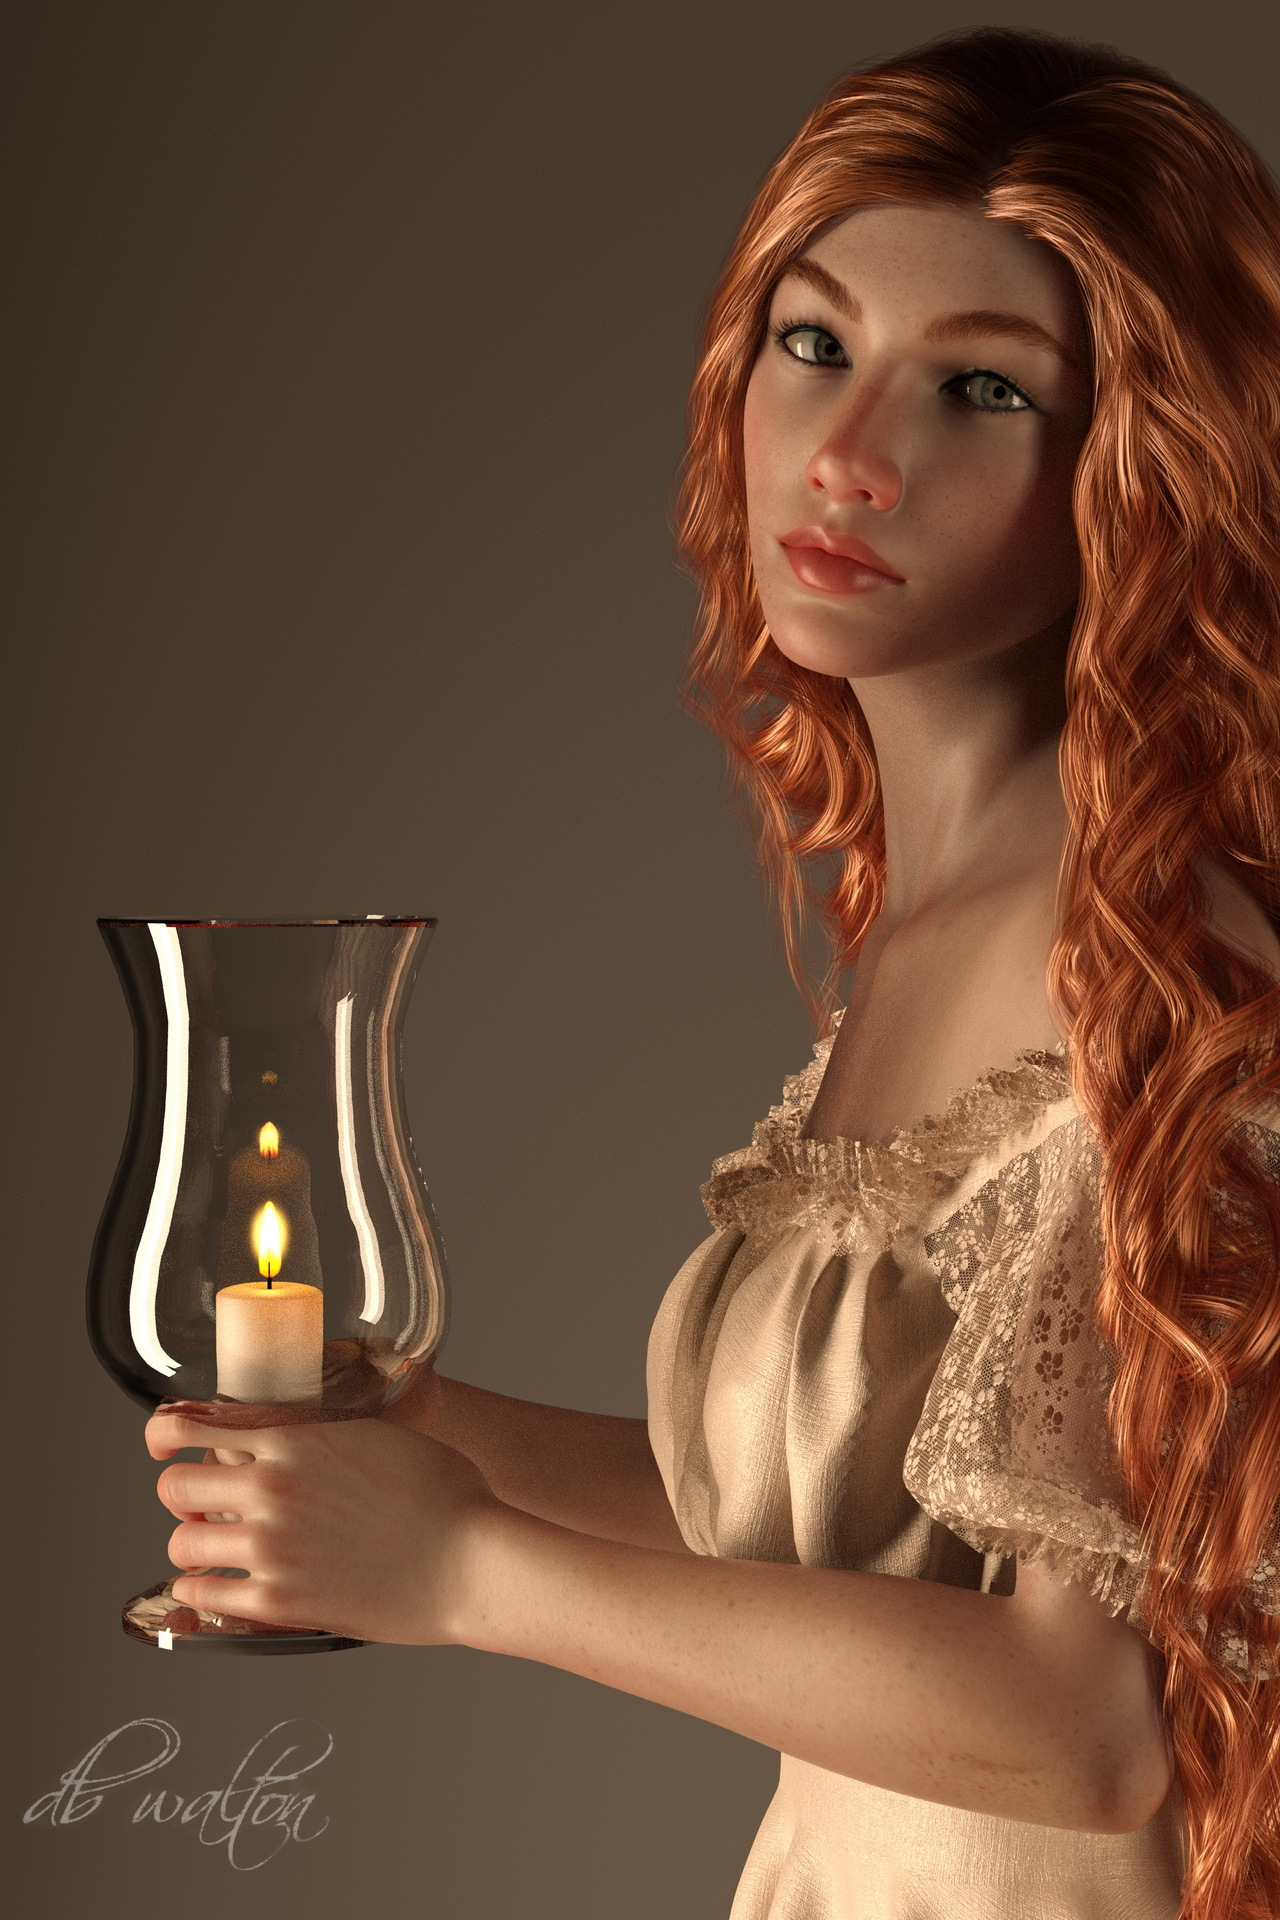 Candle Bearer 1 by dbwalton